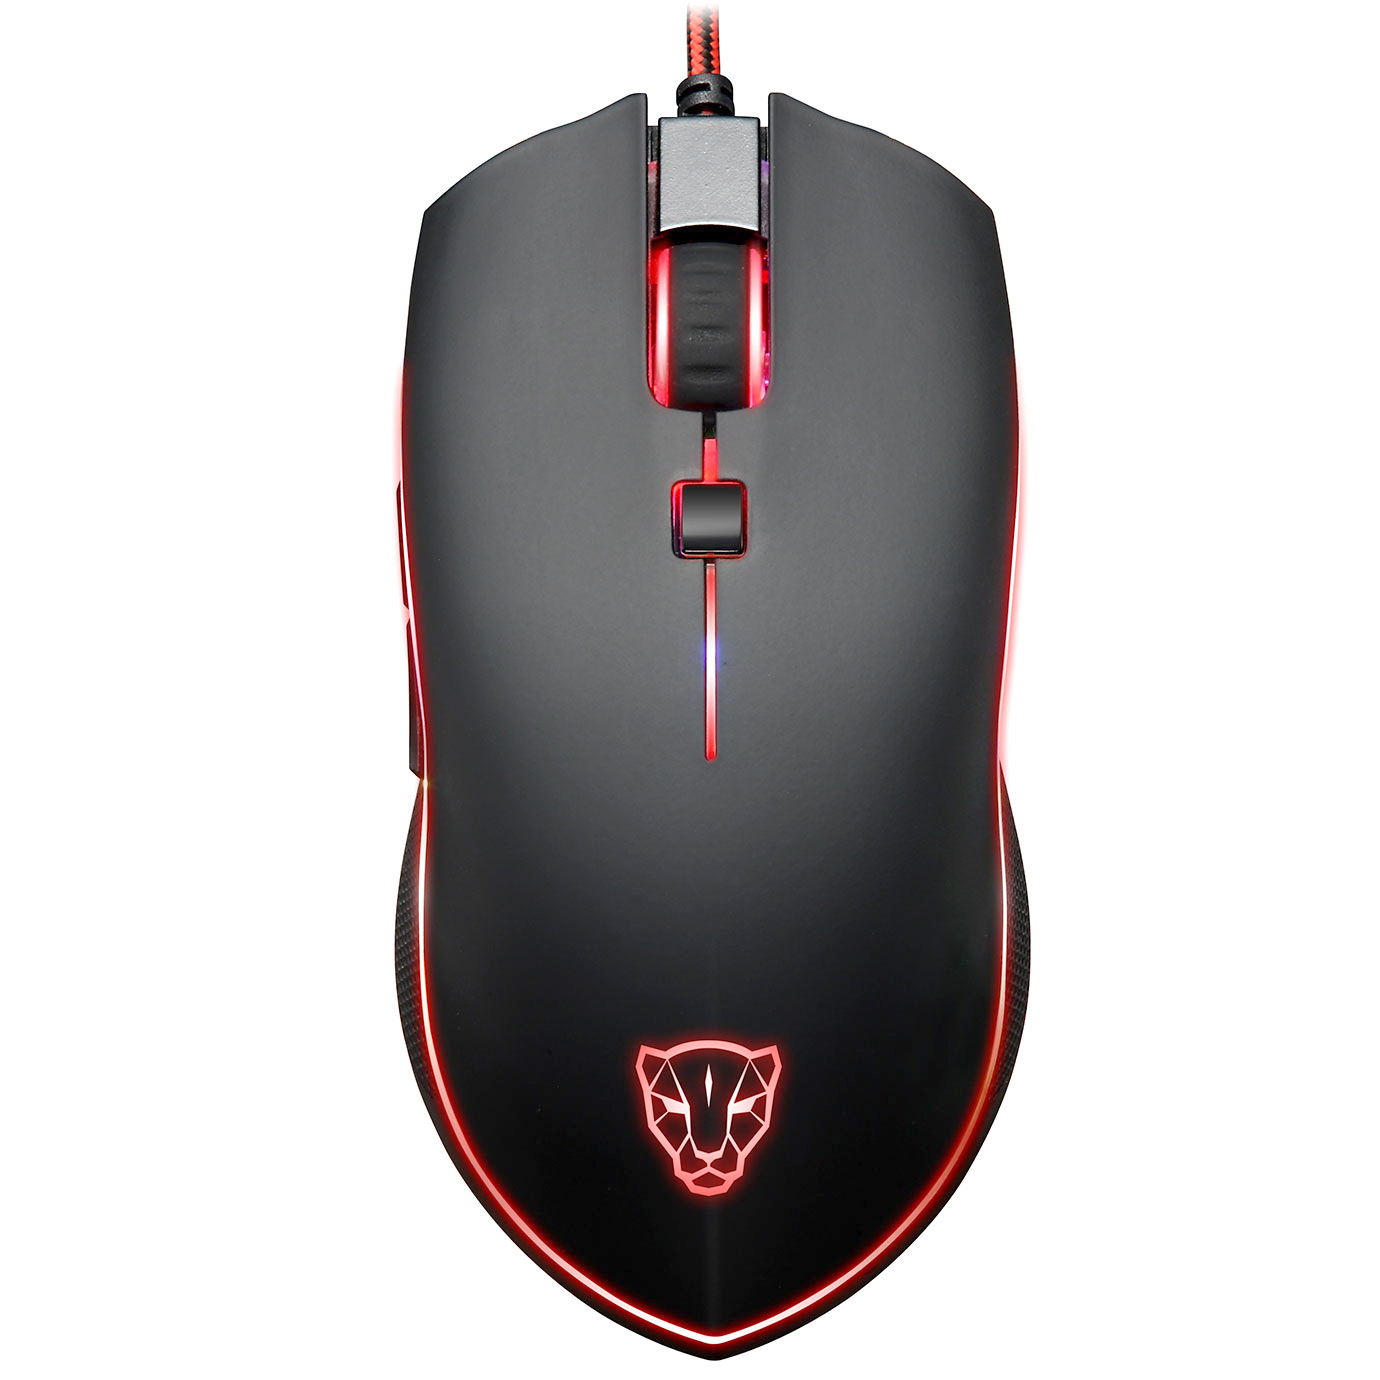 Motospeed V40 Electron-optical USB Gaming Mouse